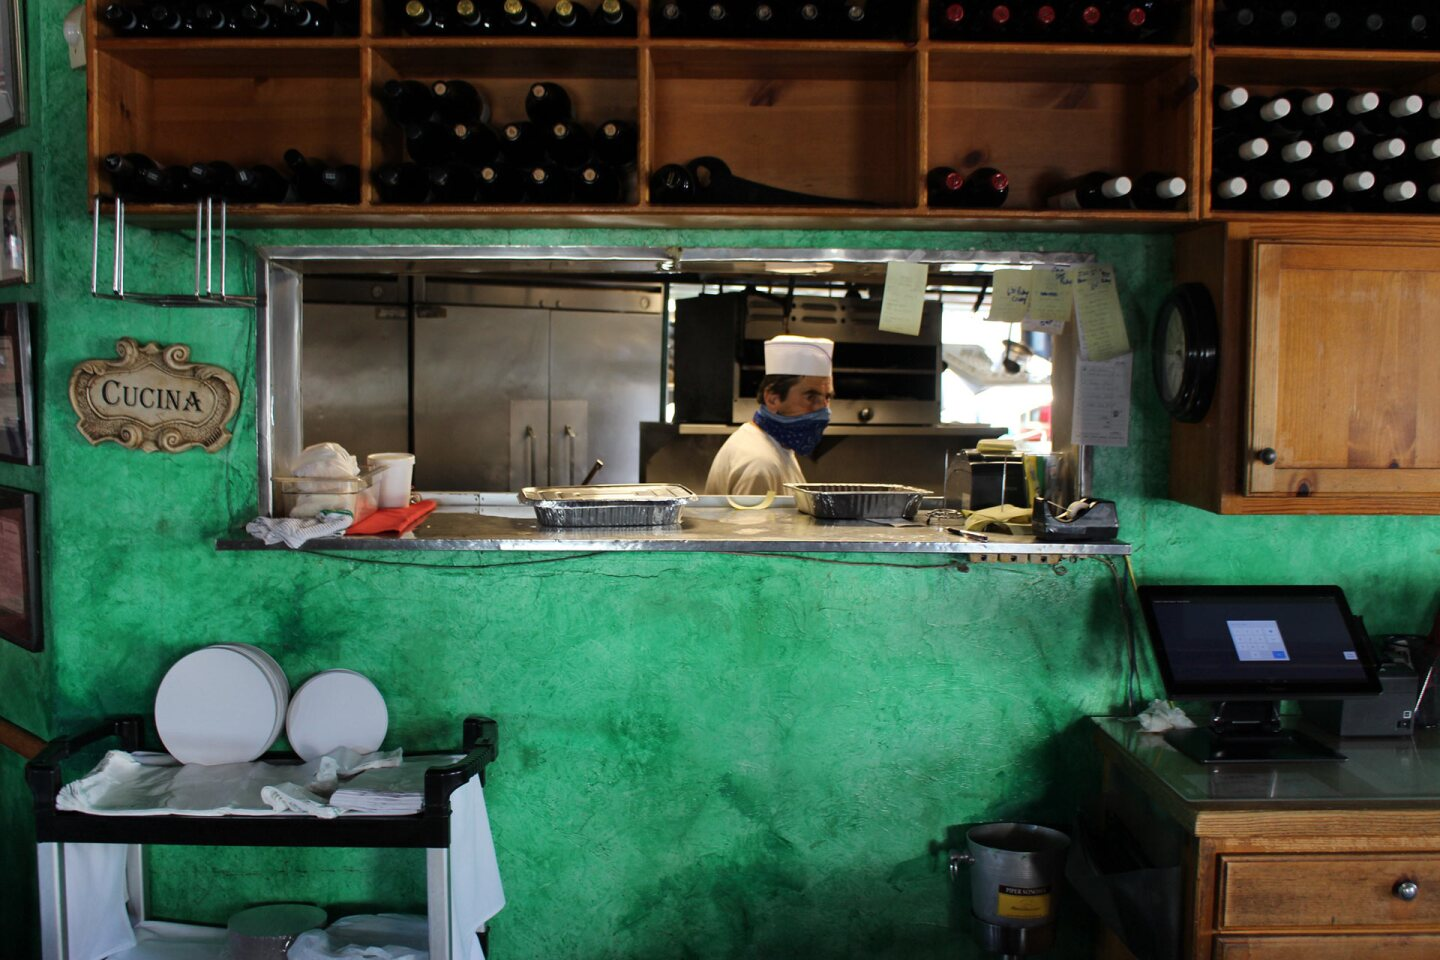 A cook in a mask stands in the kitchen ofCantalini's restaurant in Playa del Rey.   Karen Foshay